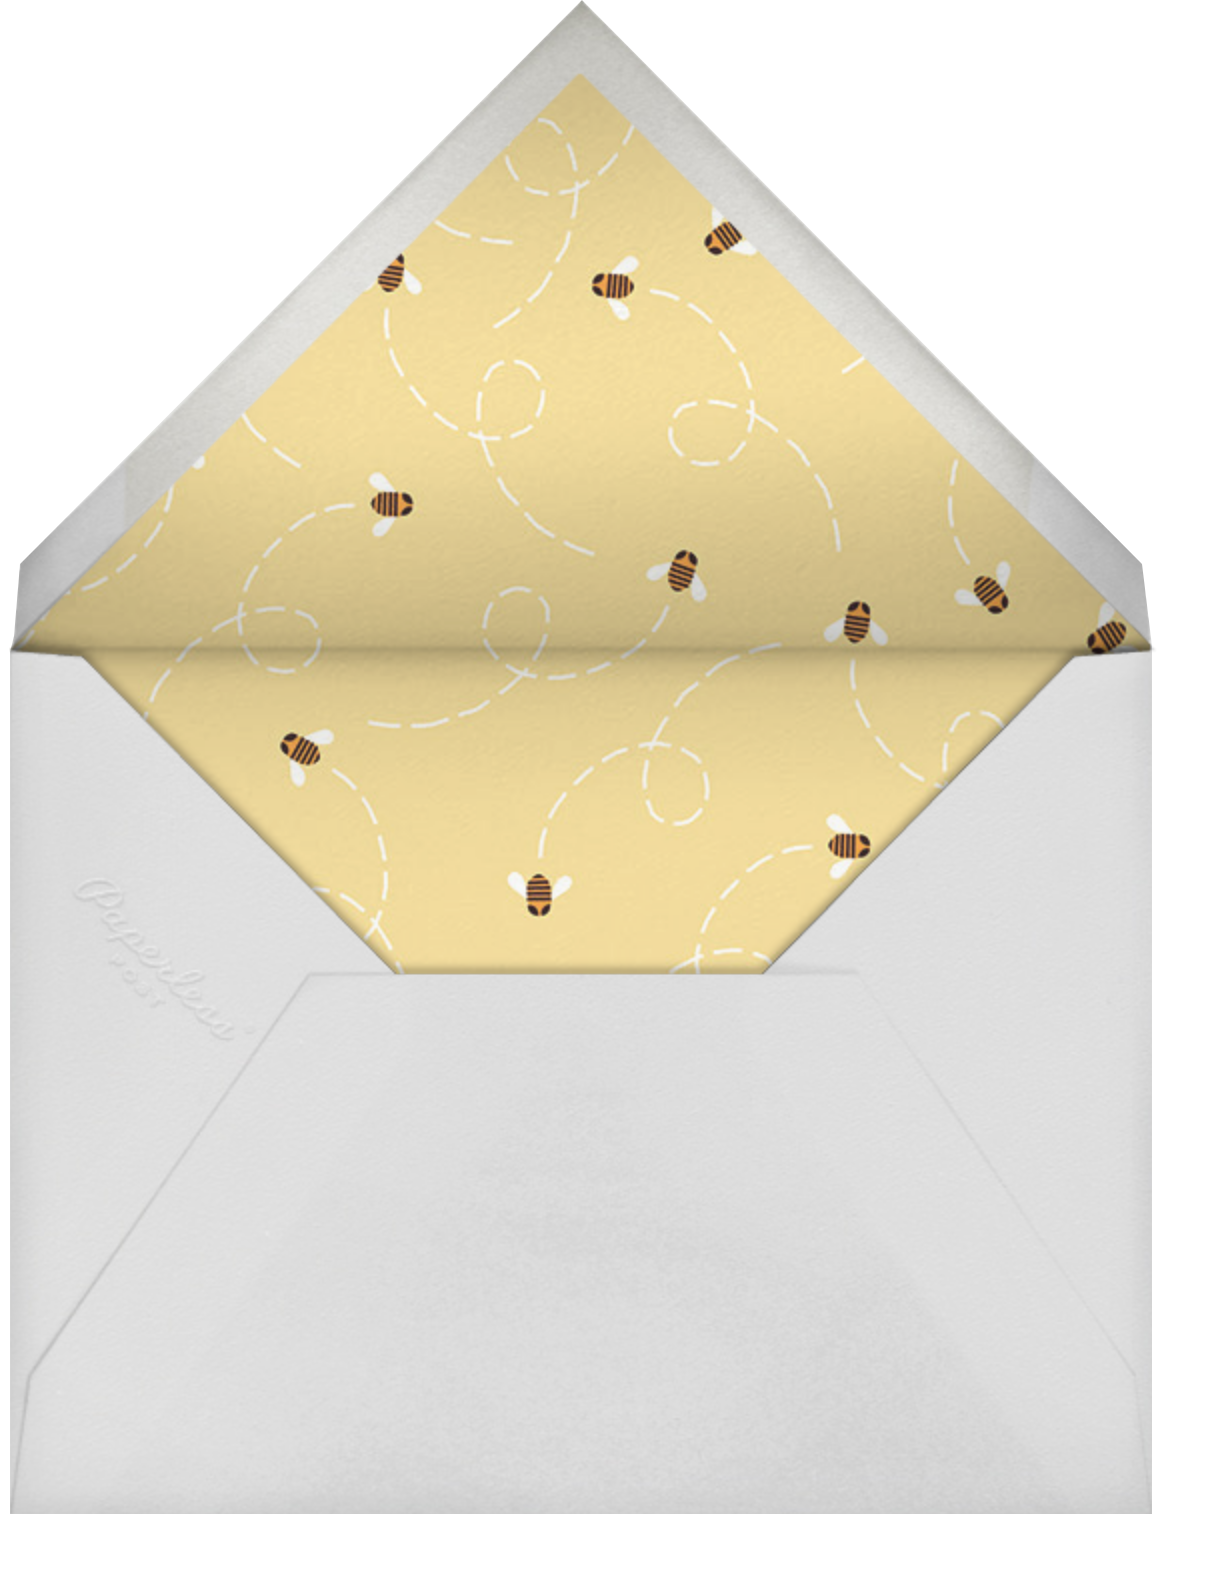 Gracile (Announcement) - White/Silver - Paperless Post - Envelope